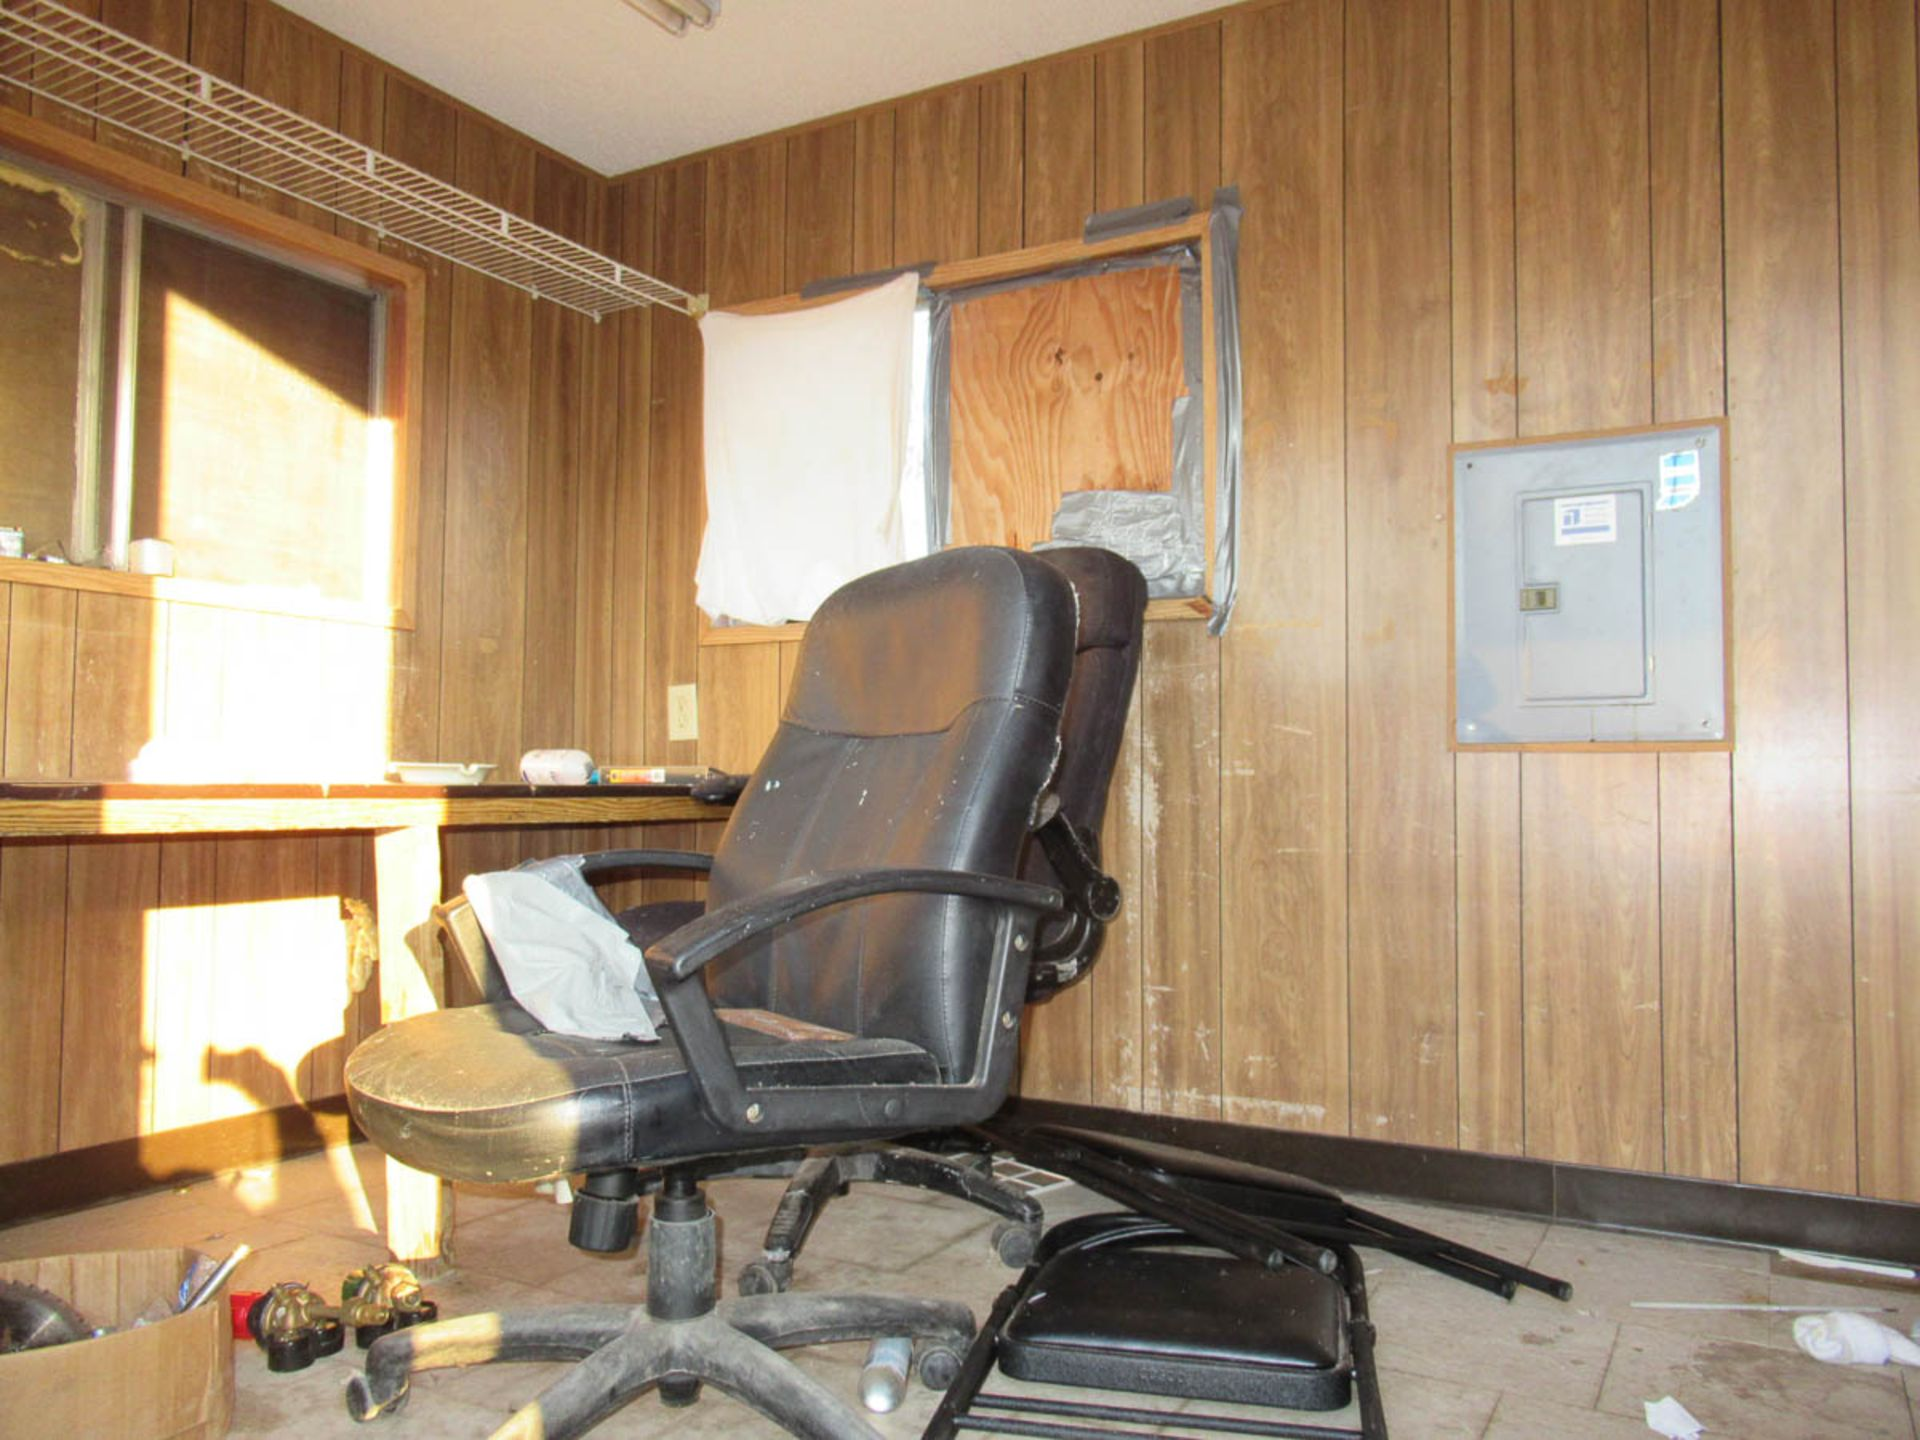 APPROXIMATELY 28' OFFICE TRAILER [LOCATED @ MARINE PARKWAY BRIDGE - QUEENS SIDE] - Image 7 of 9